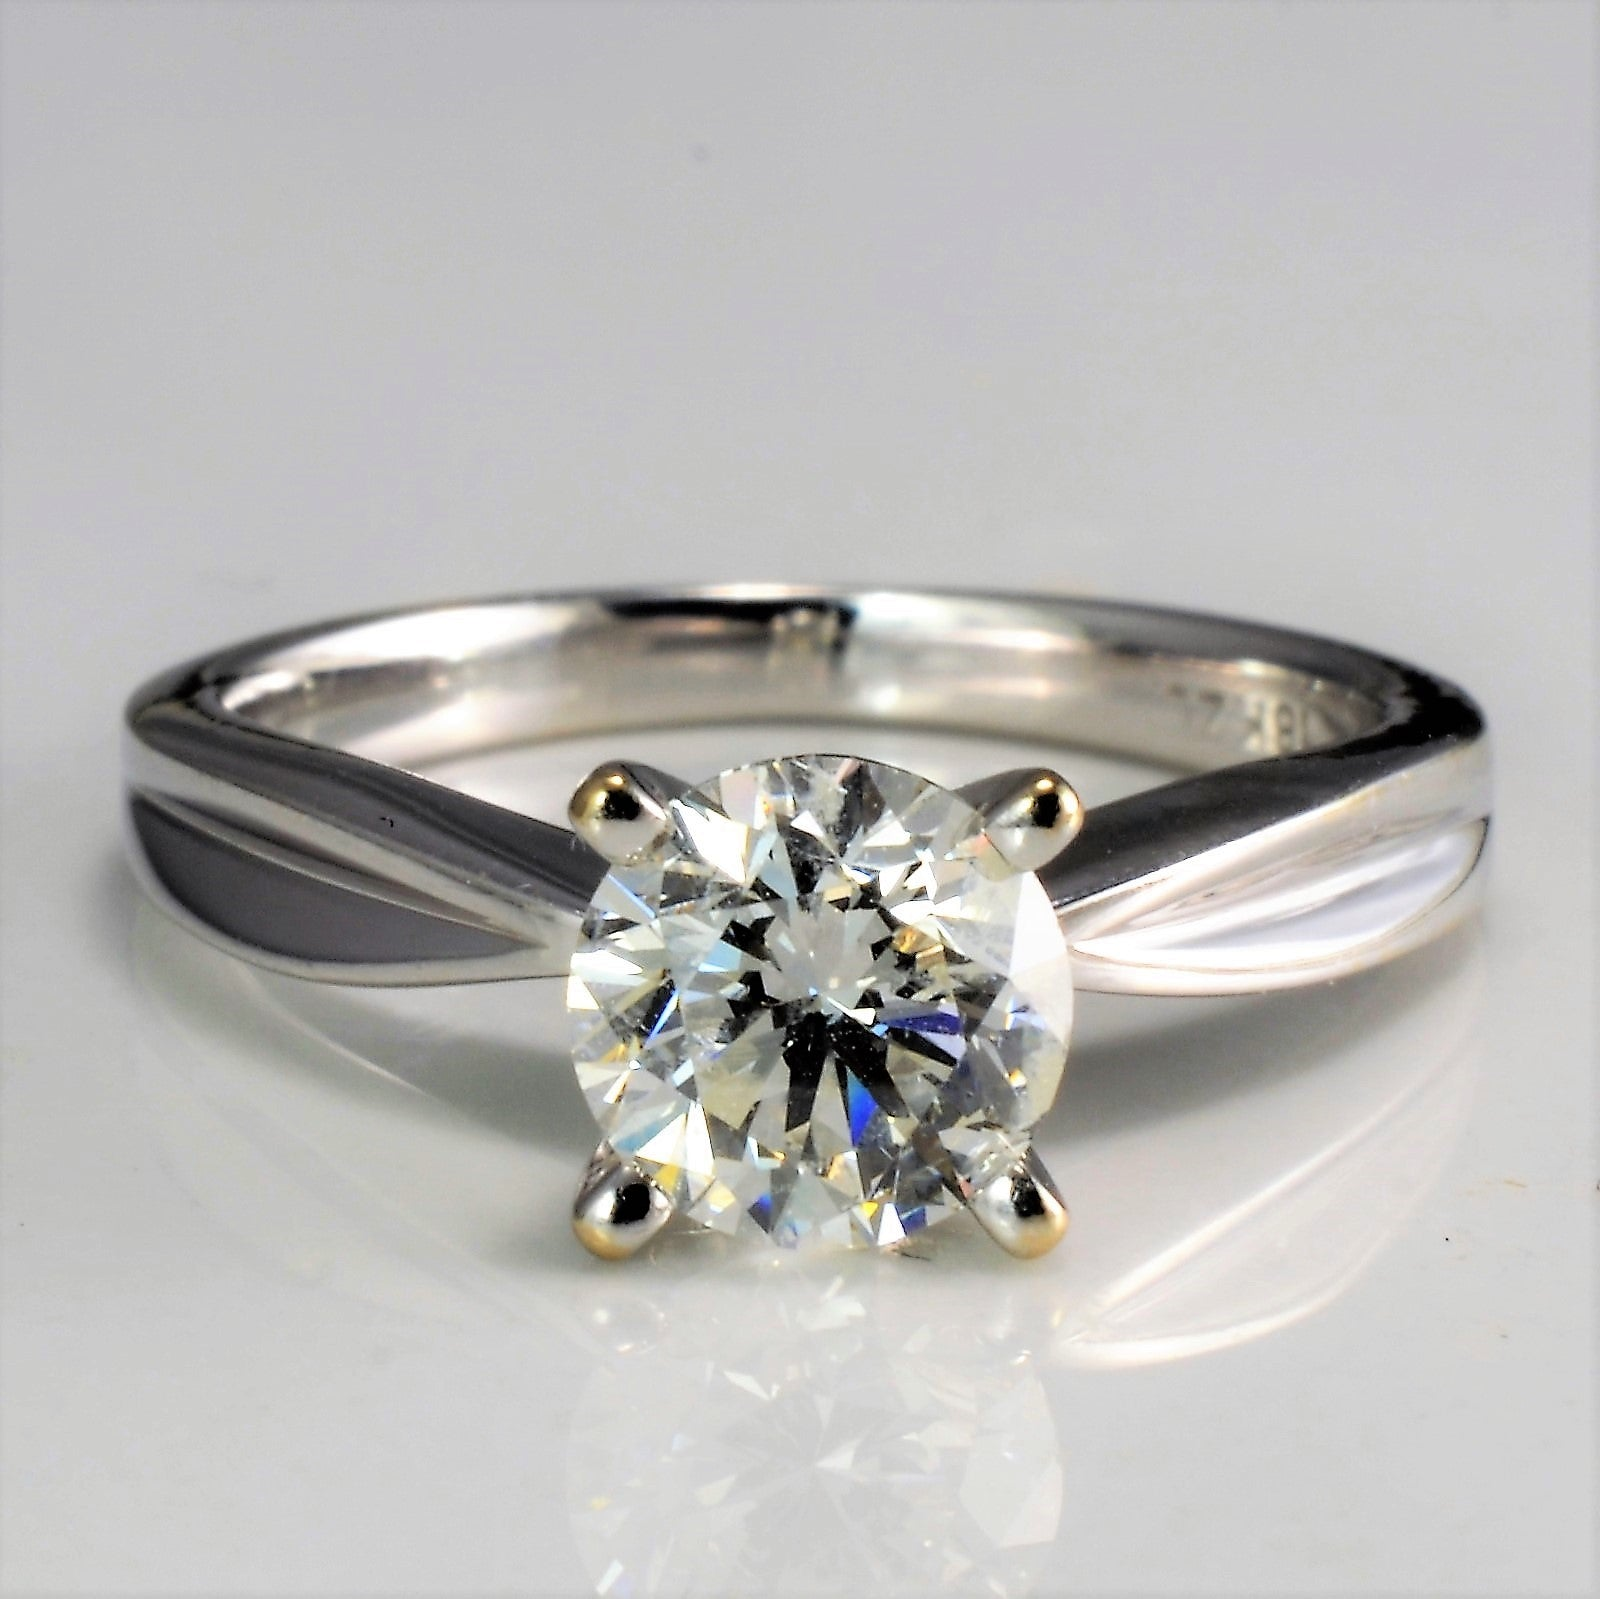 Prong Set Solitaire Diamond Engagement Ring | 1.01 ct, SZ 4.75 |